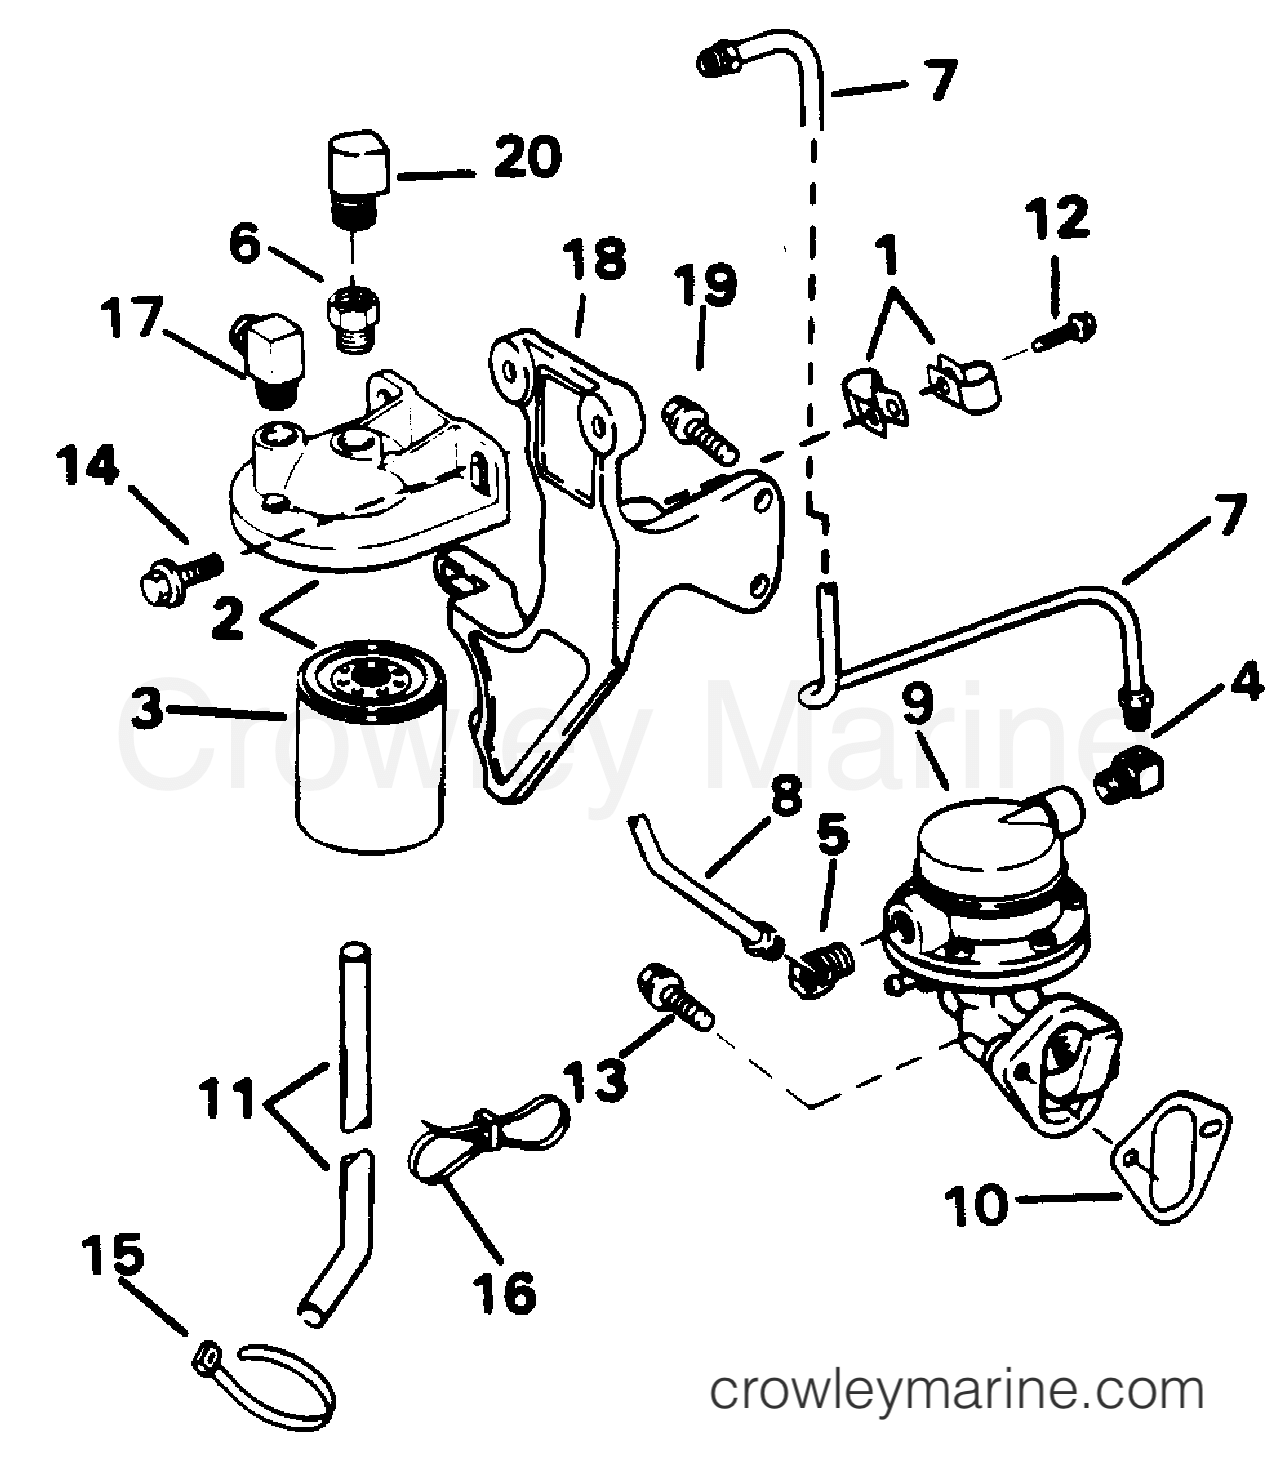 1997 ford explorer xlt wiring diagram ford 351 water pump replacement imageresizertool com 1997 ford explorer 302 engine diagram